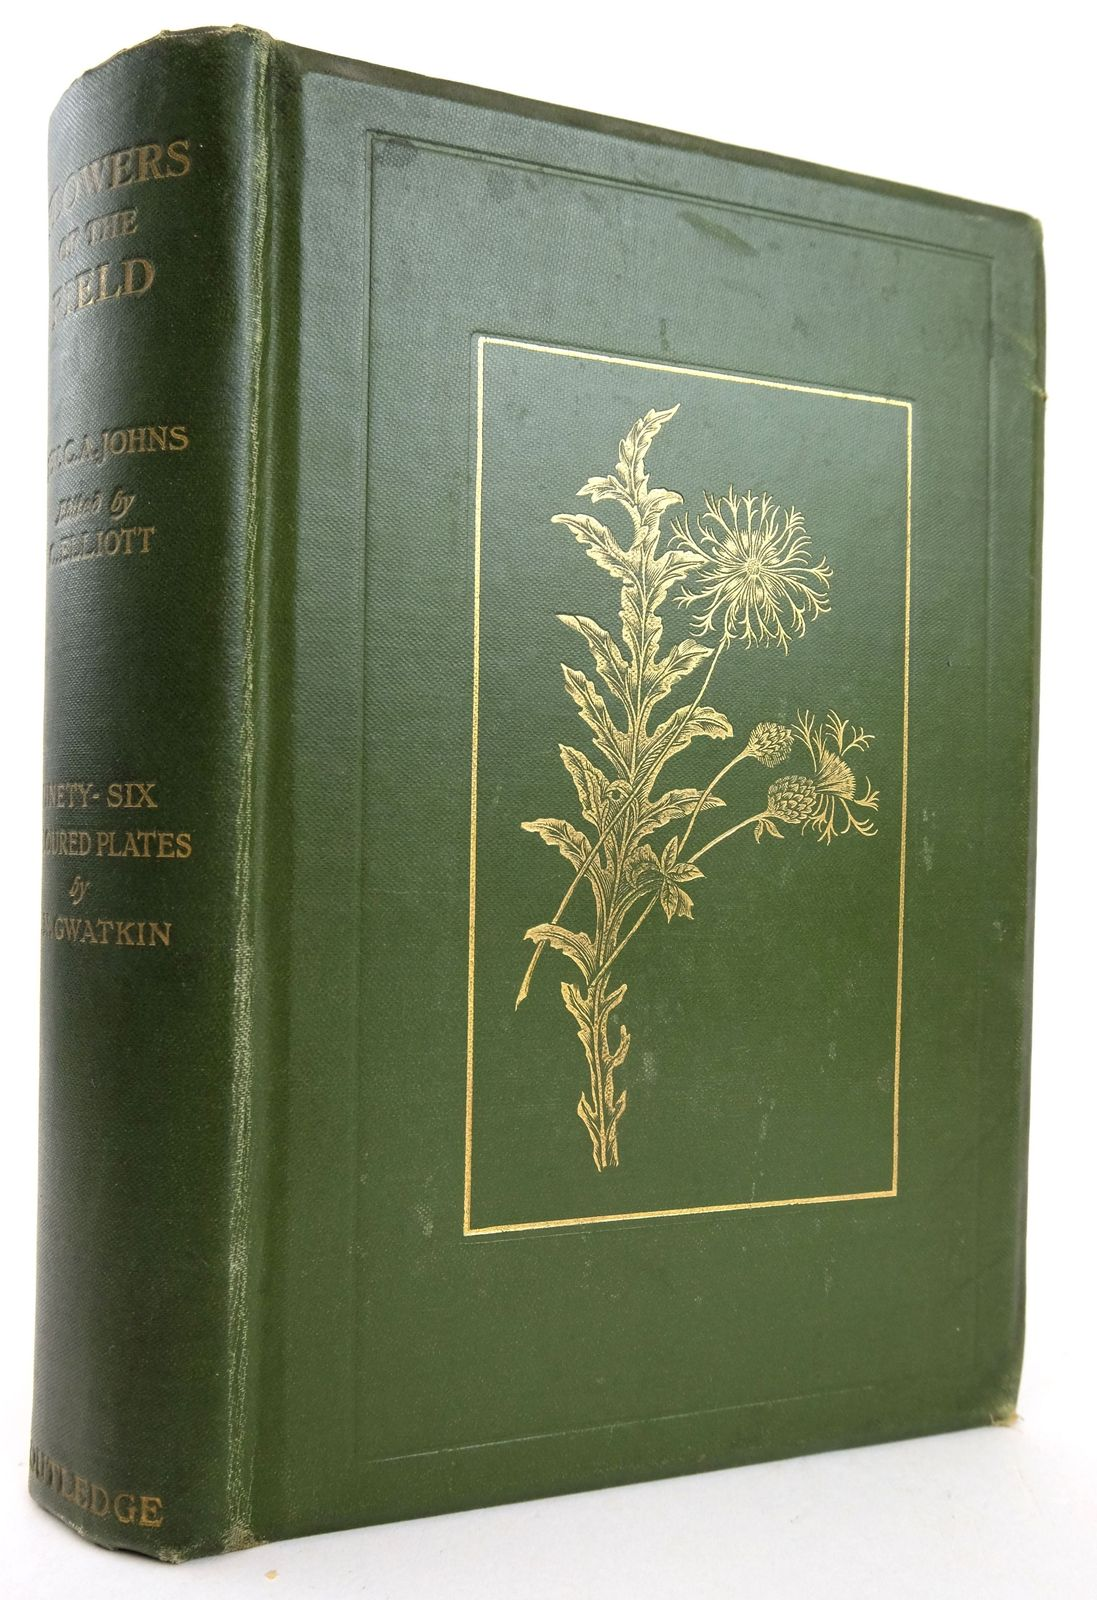 Photo of FLOWERS OF THE FIELD written by Johns, Rev C.A. Elliott, Clarence illustrated by Gwatkin, E.N. published by George Routledge and Sons Limited (STOCK CODE: 1819226)  for sale by Stella & Rose's Books